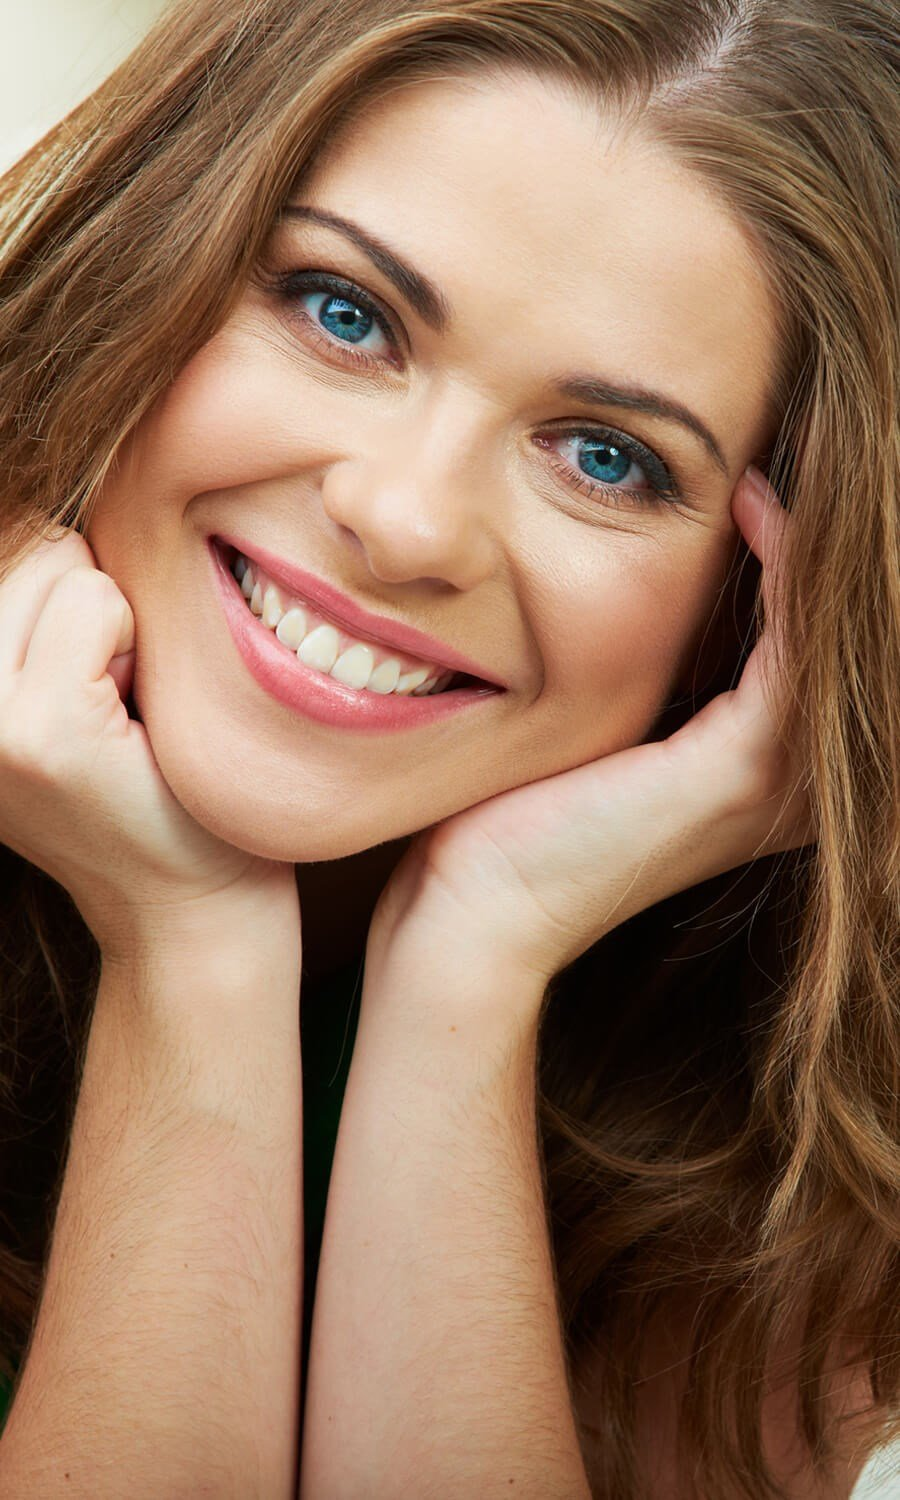 FREE CONSULTATIONS FOR YOUR SMILE -